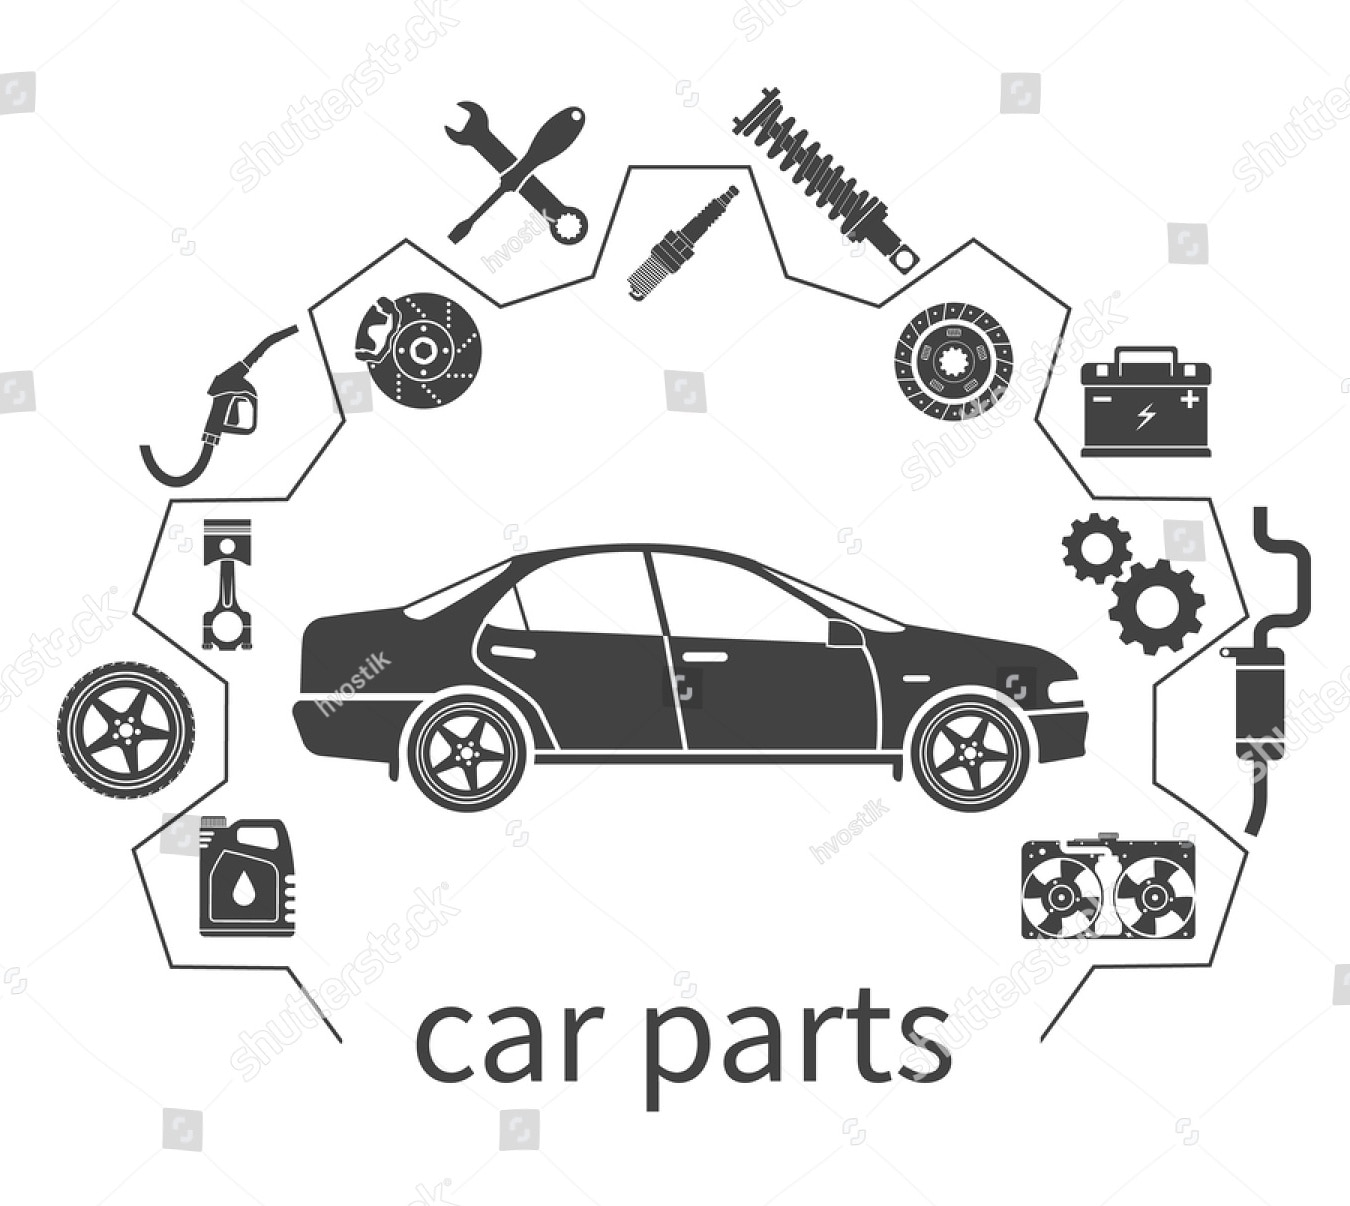 BUY USED CAR PARTS in Amritsar, We are working from last 4 years in ...